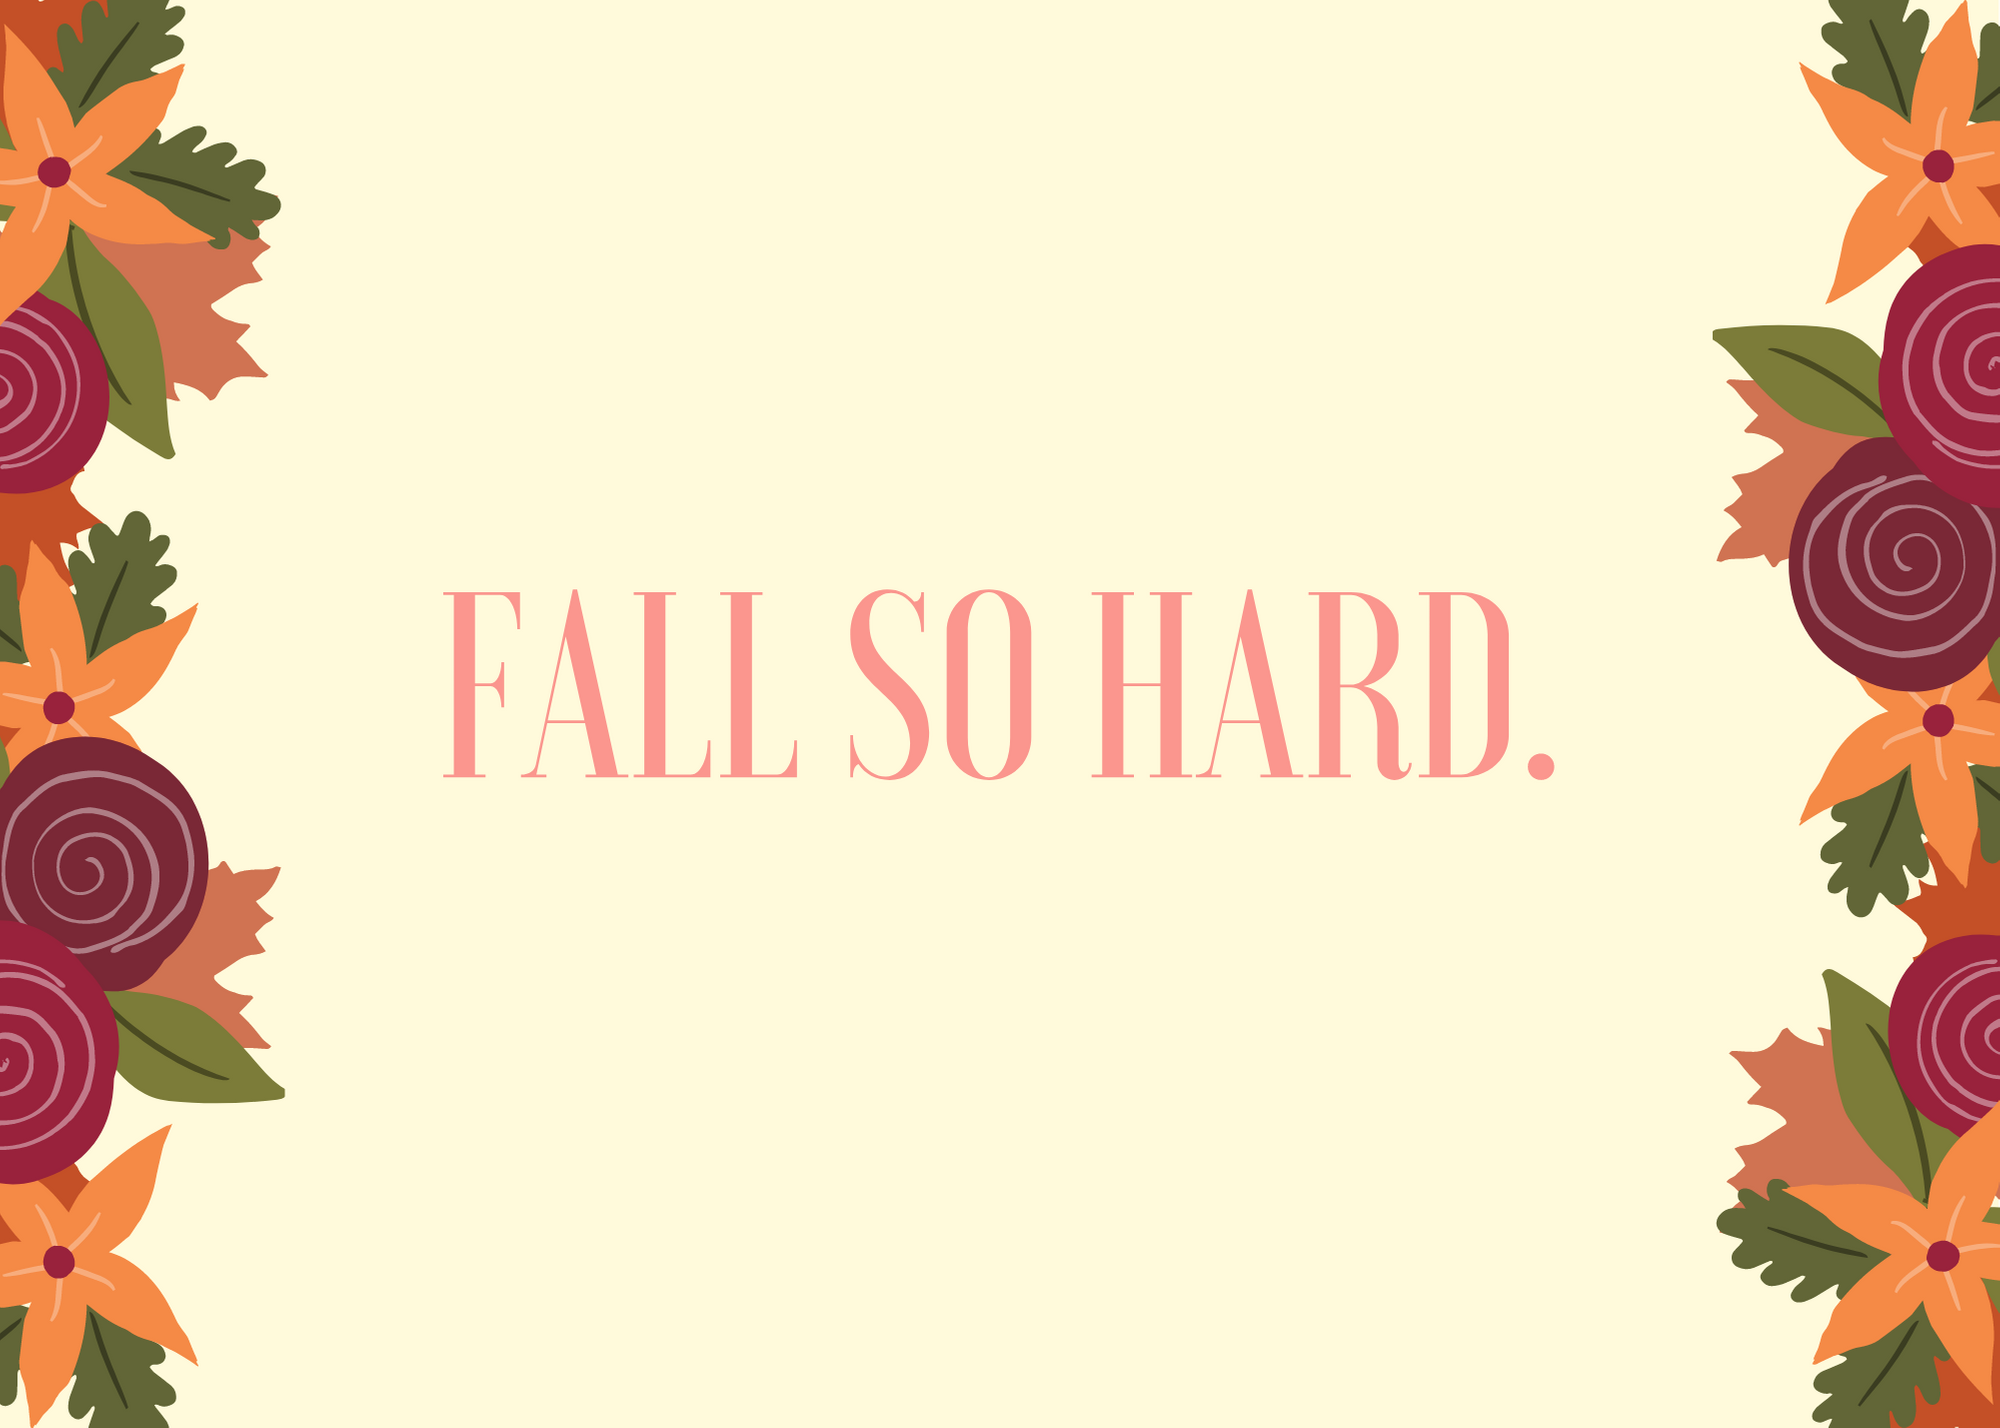 Funny Fall Instagram Caption About Falling So Hard